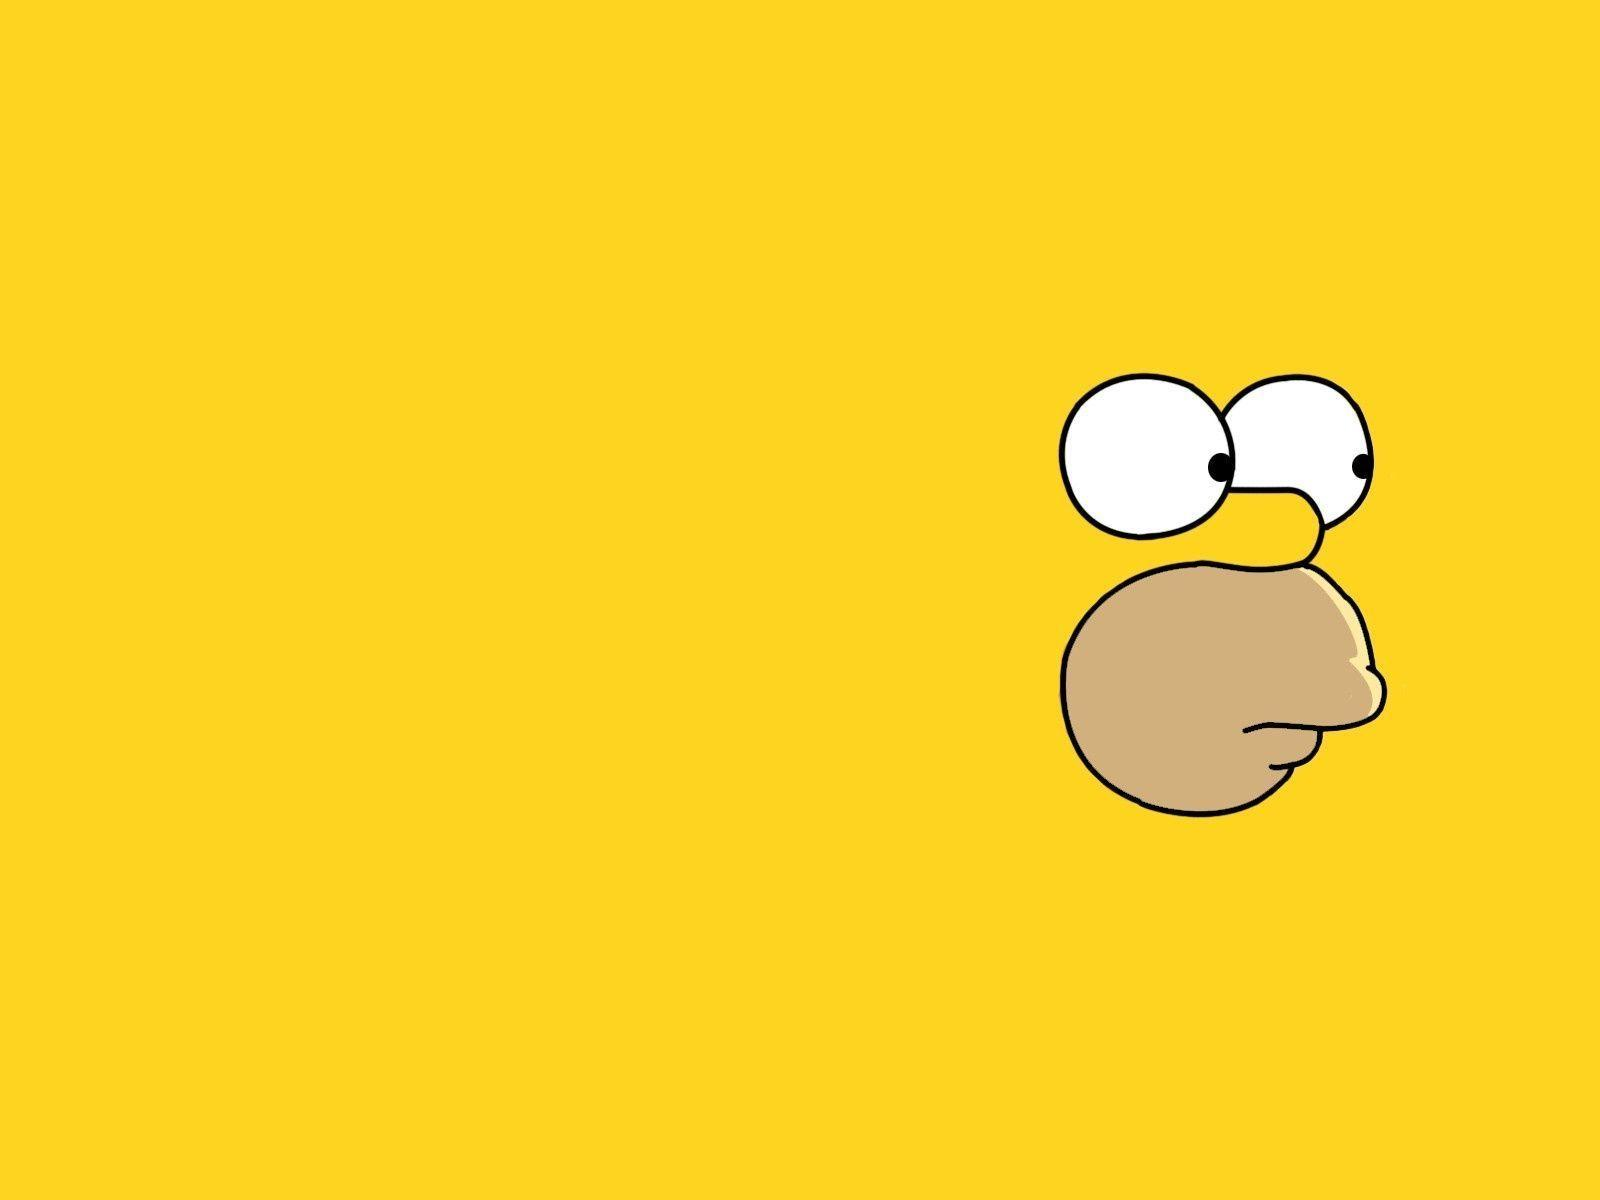 The Simpsons Wallpapers 1920 X 1080: Wallpapers For Gt Simpsons ...